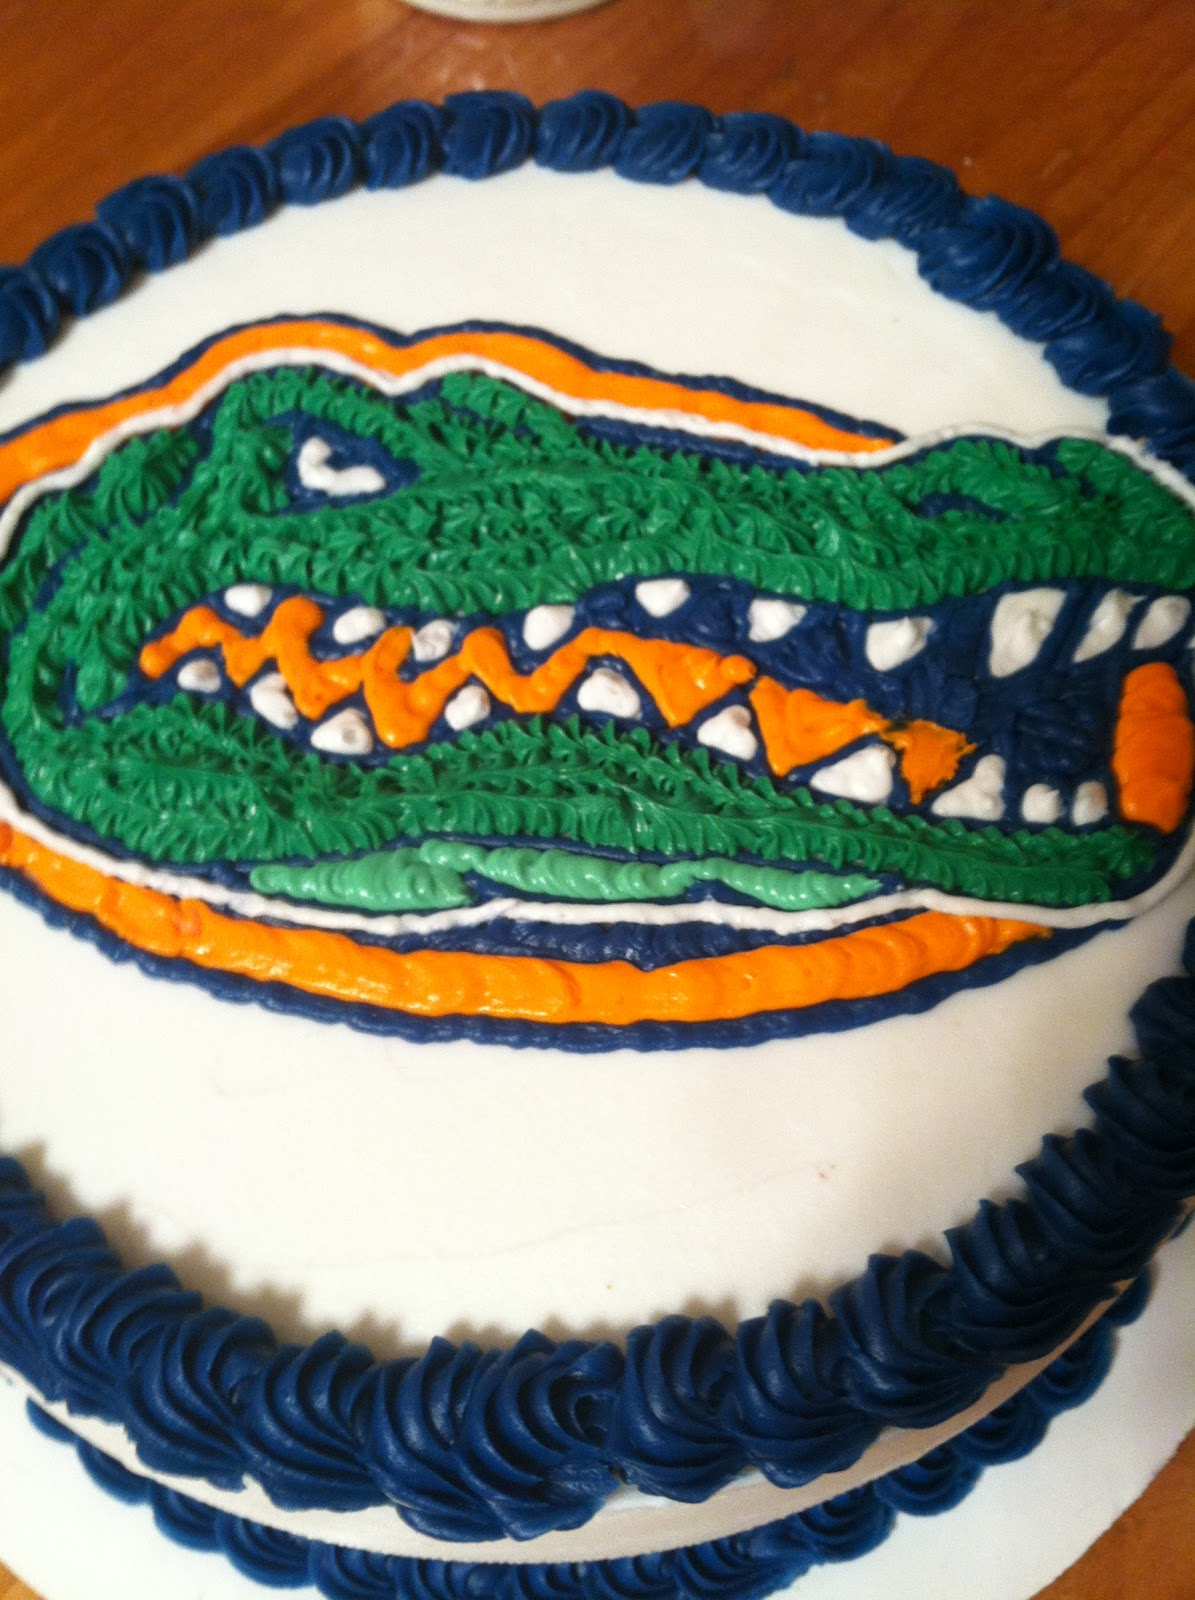 Introducing A Bday Cake For The Florida Gators Biggest Fan